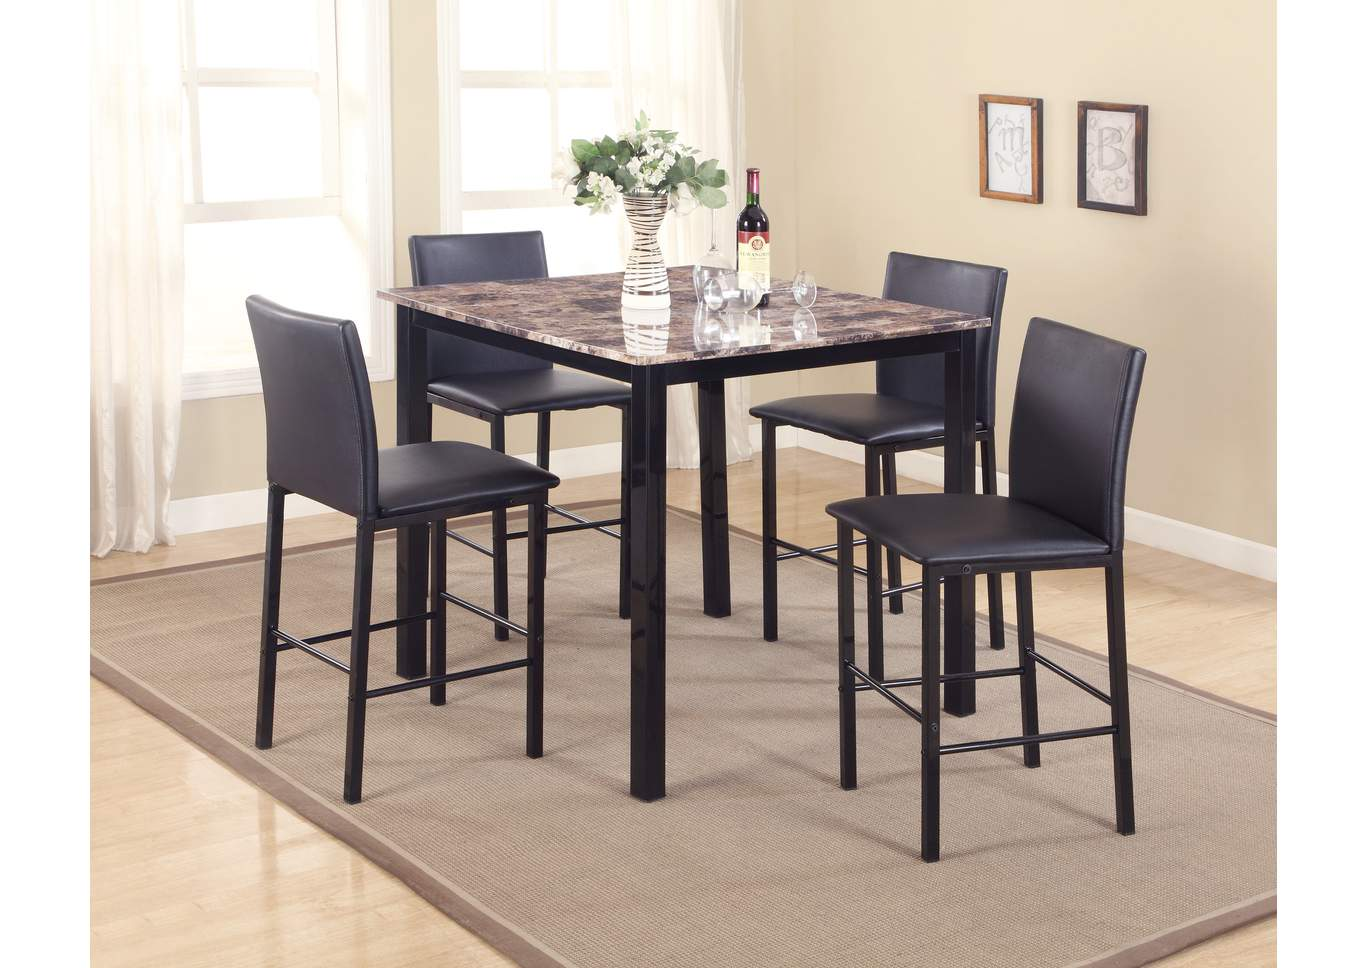 aiden counter height dining room table w 4 counter height chairs crown